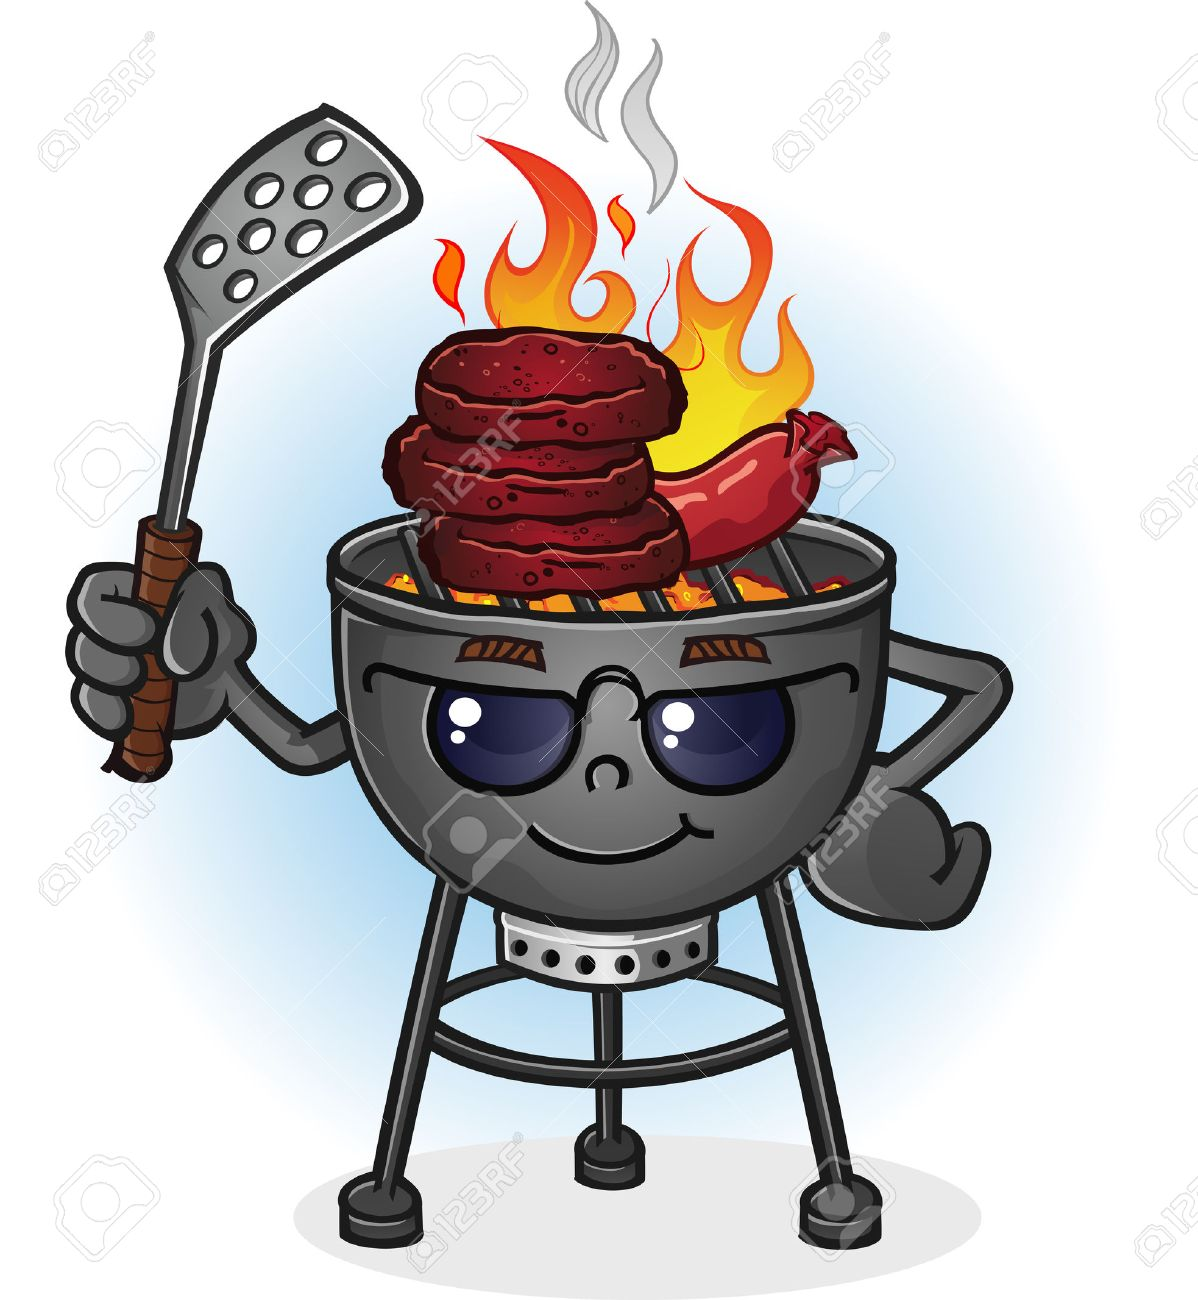 hight resolution of barbecue grill cartoon character with attitude stock vector 29305603